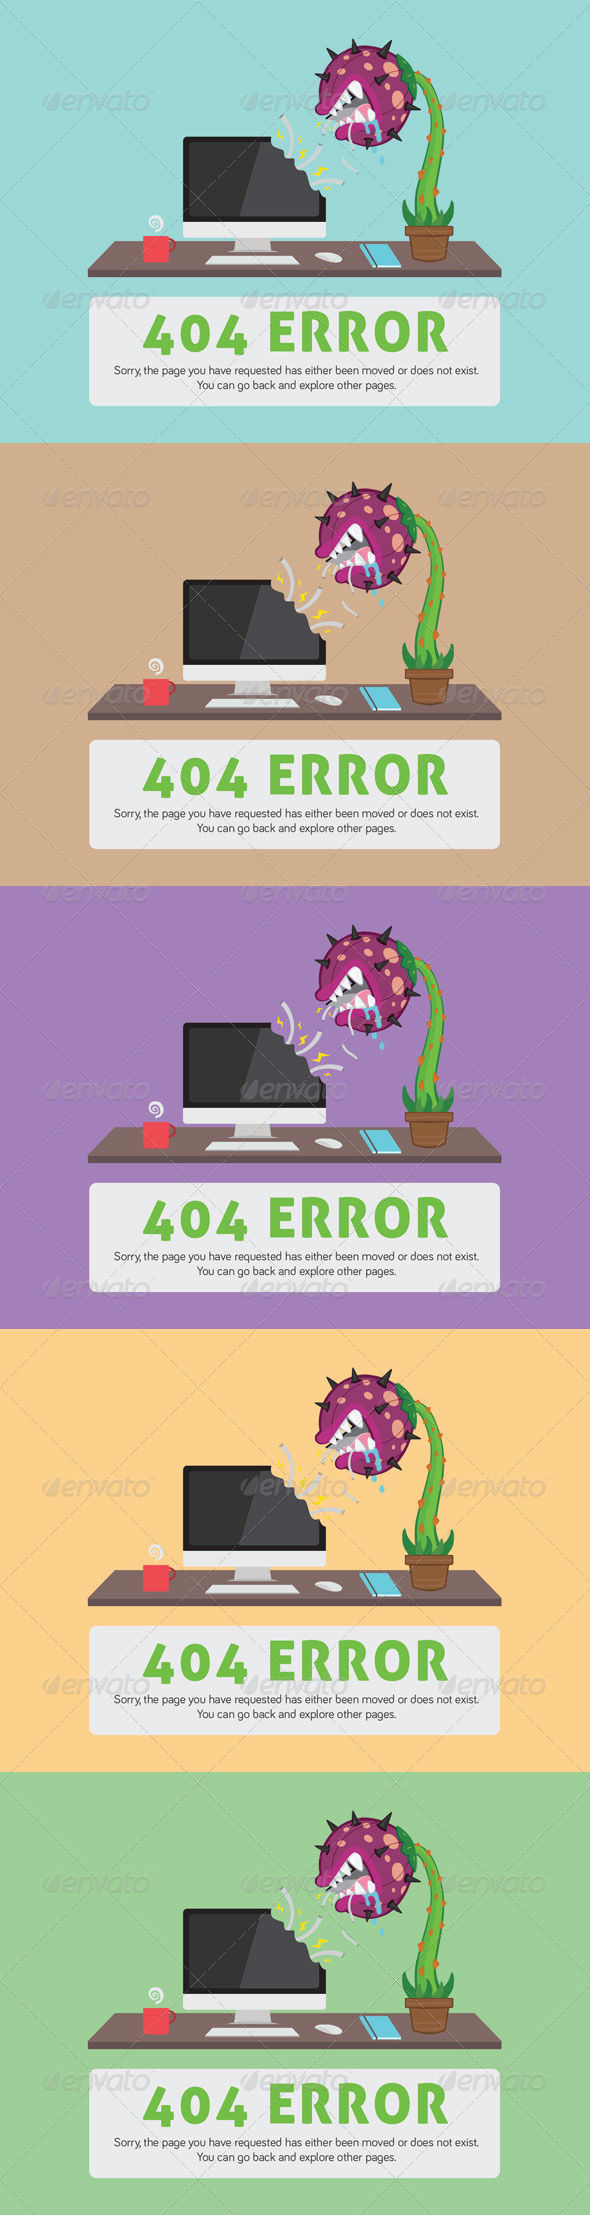 Carnivorous Plant ERROR Web Page by AddtoFavorites (layered 404 page template)